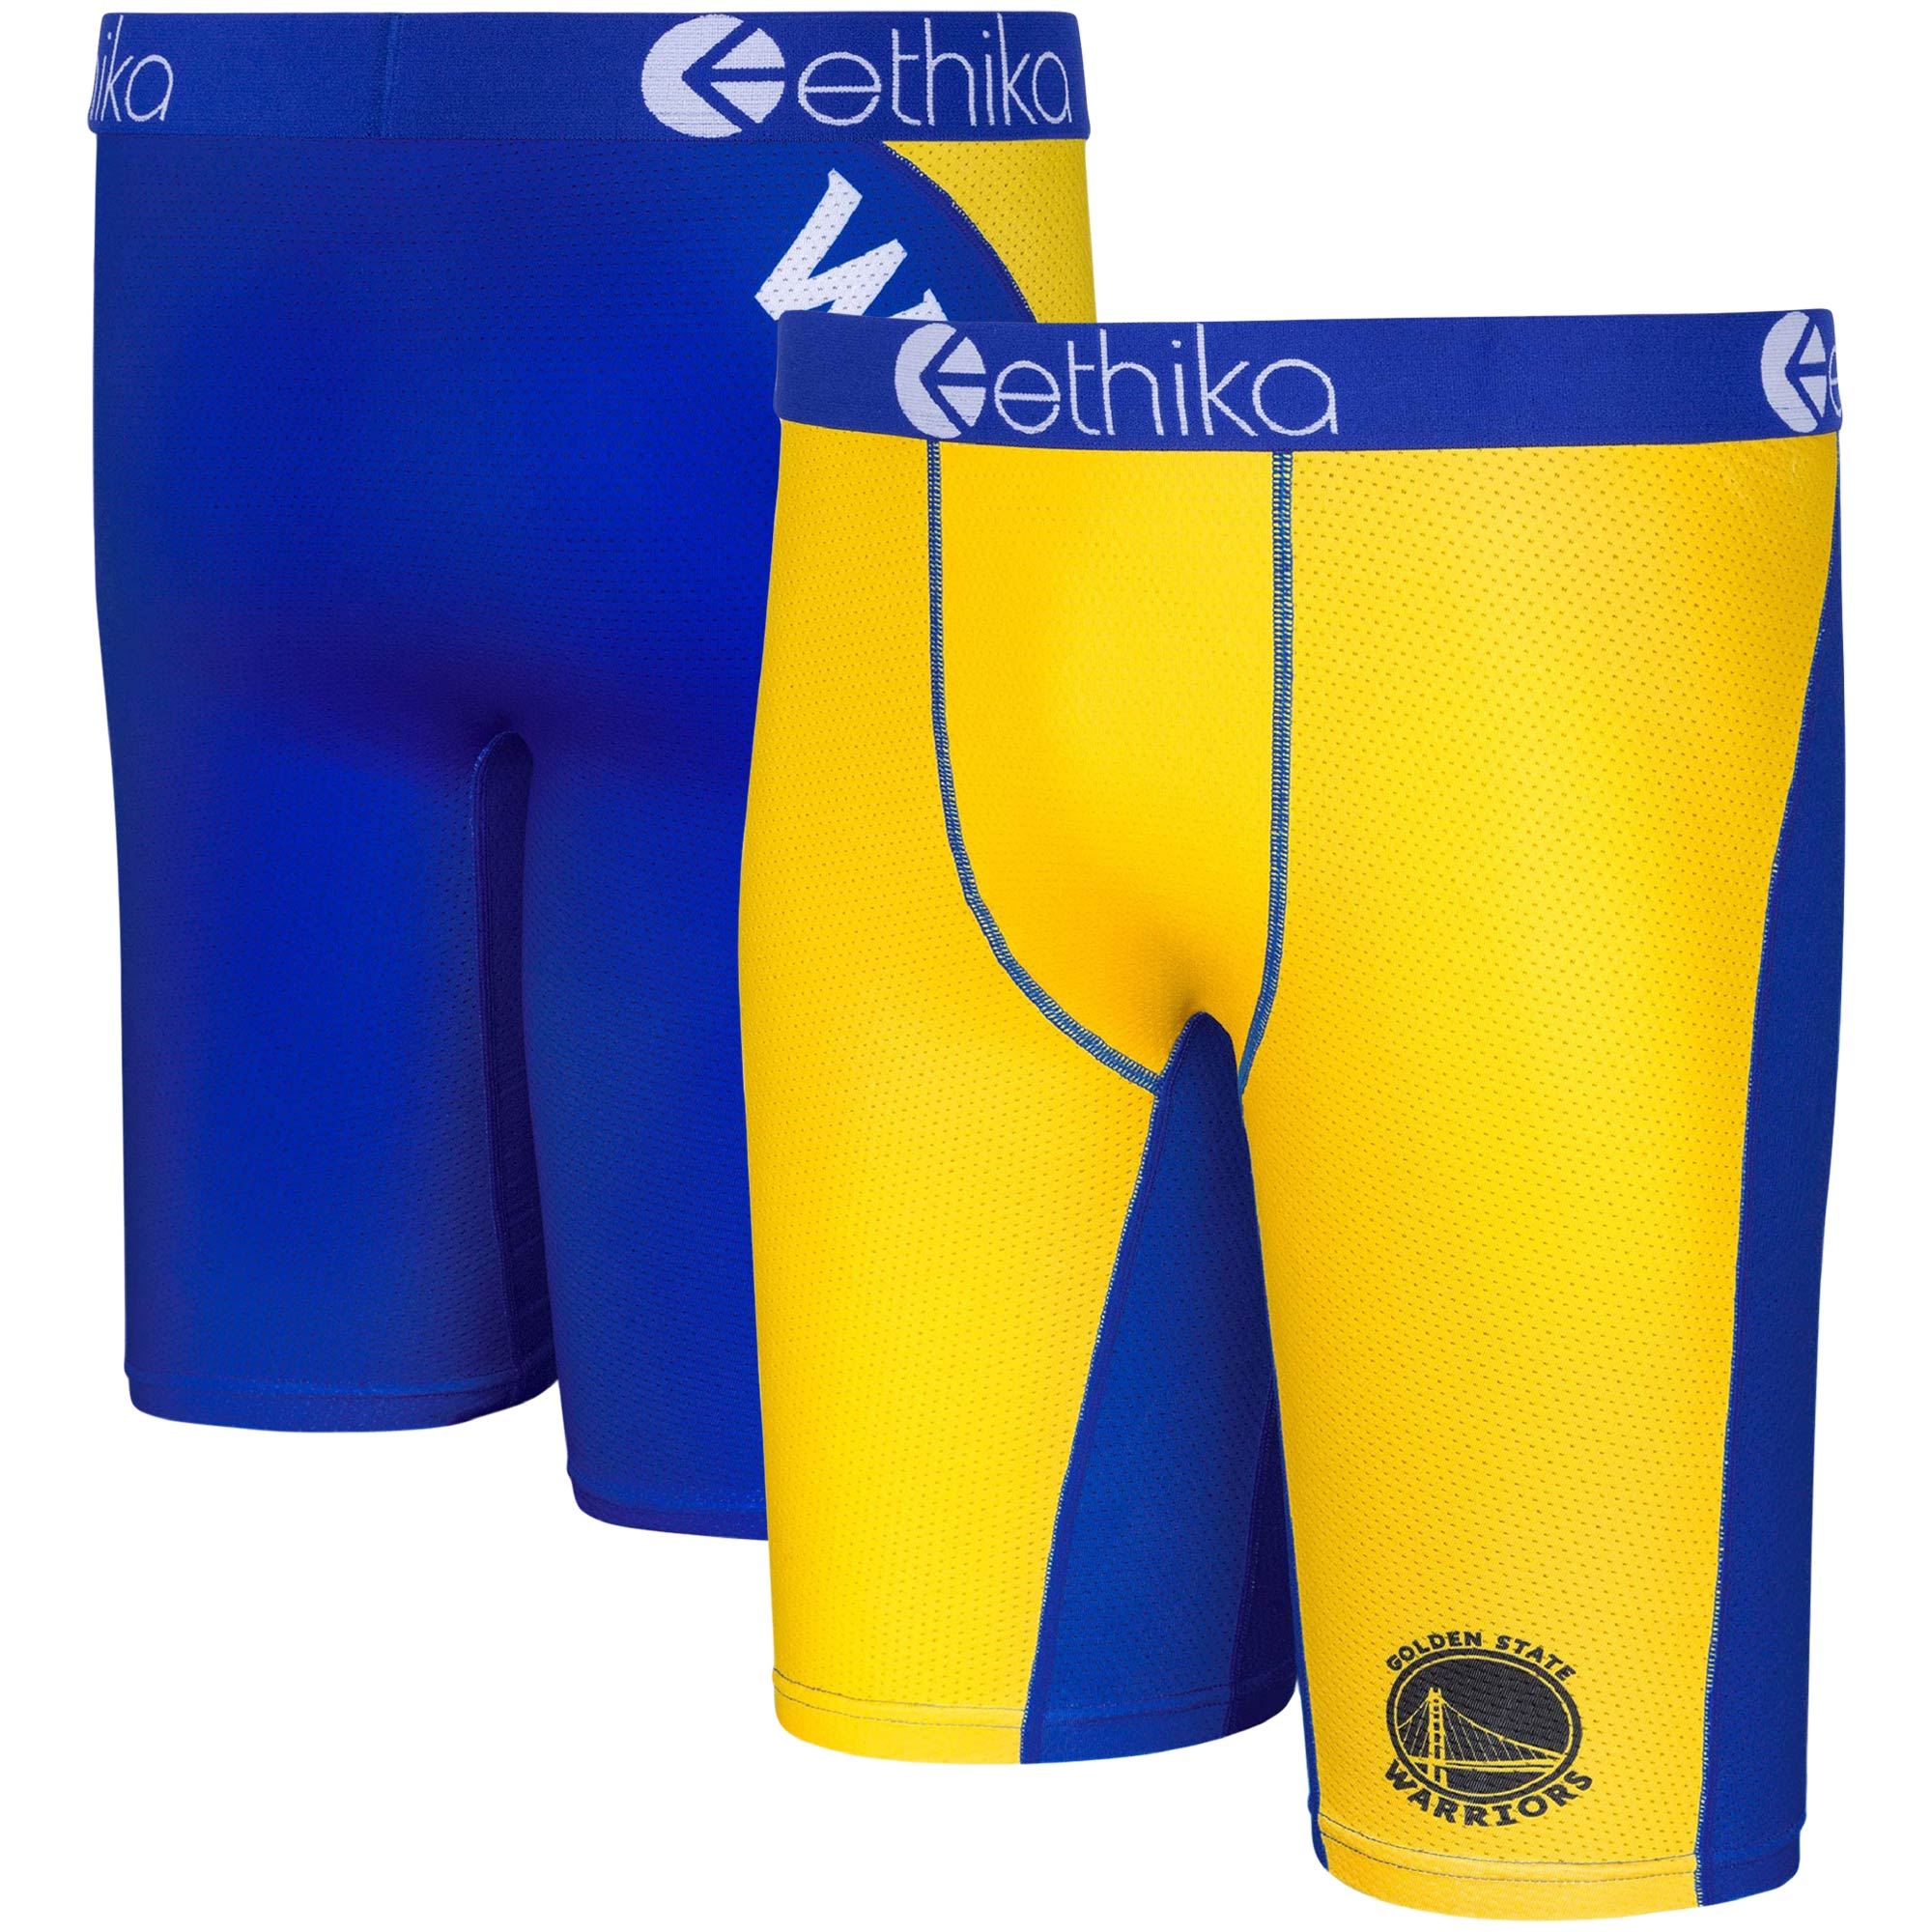 Golden State Warriors Ethika for Fanatics Micromesh Boxer Briefs - Gold